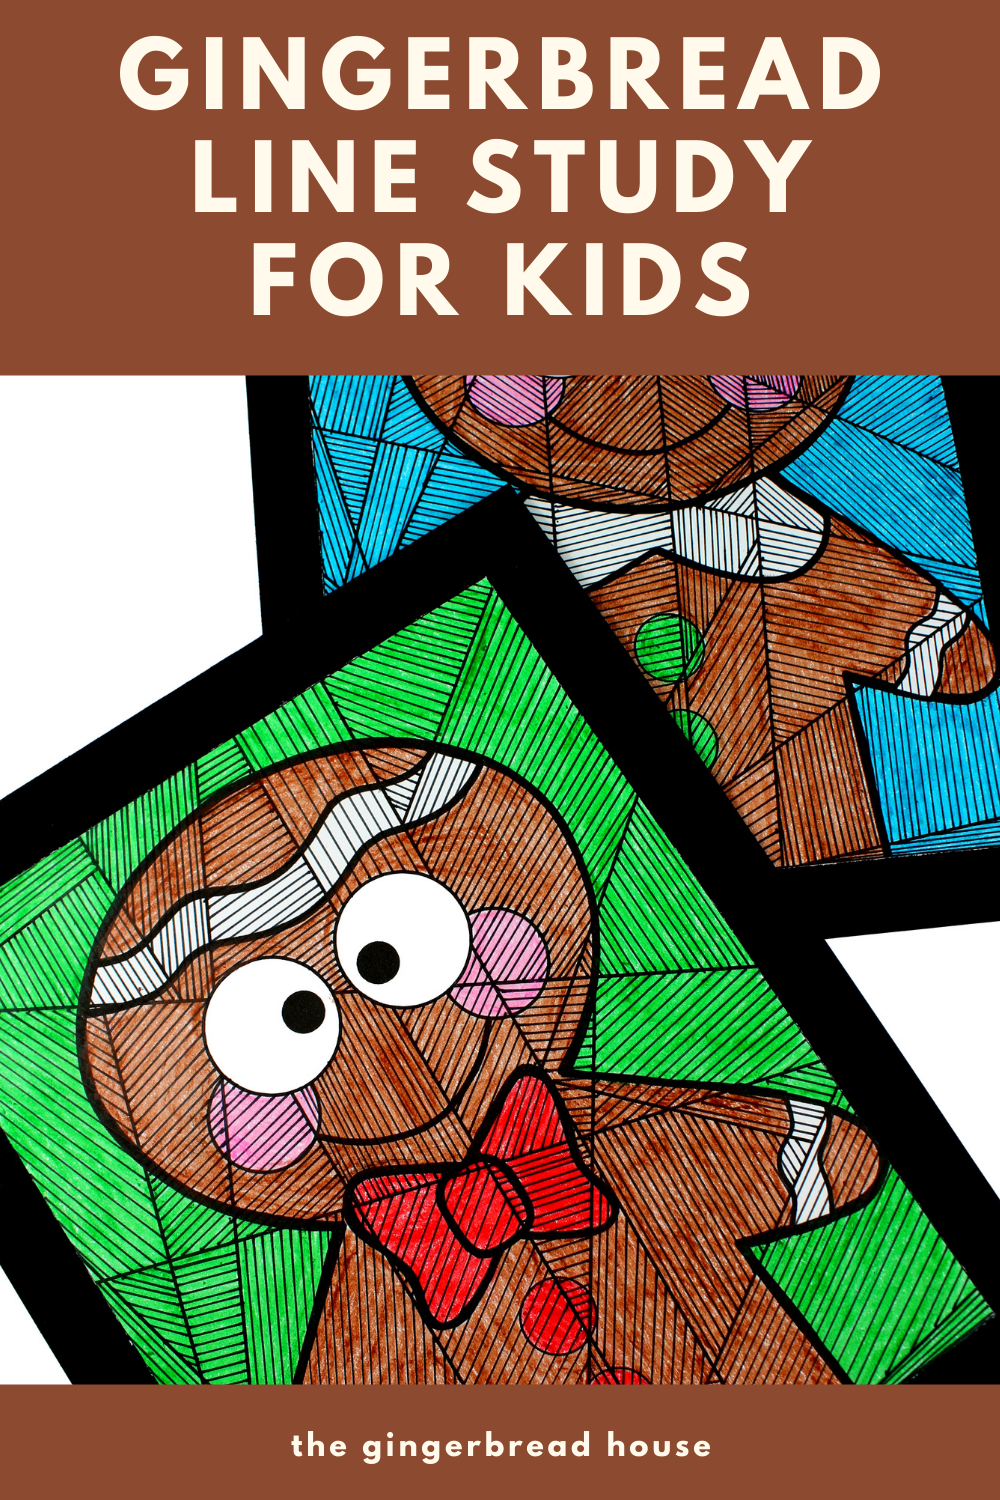 Gingerbread boy and girl line study for kids